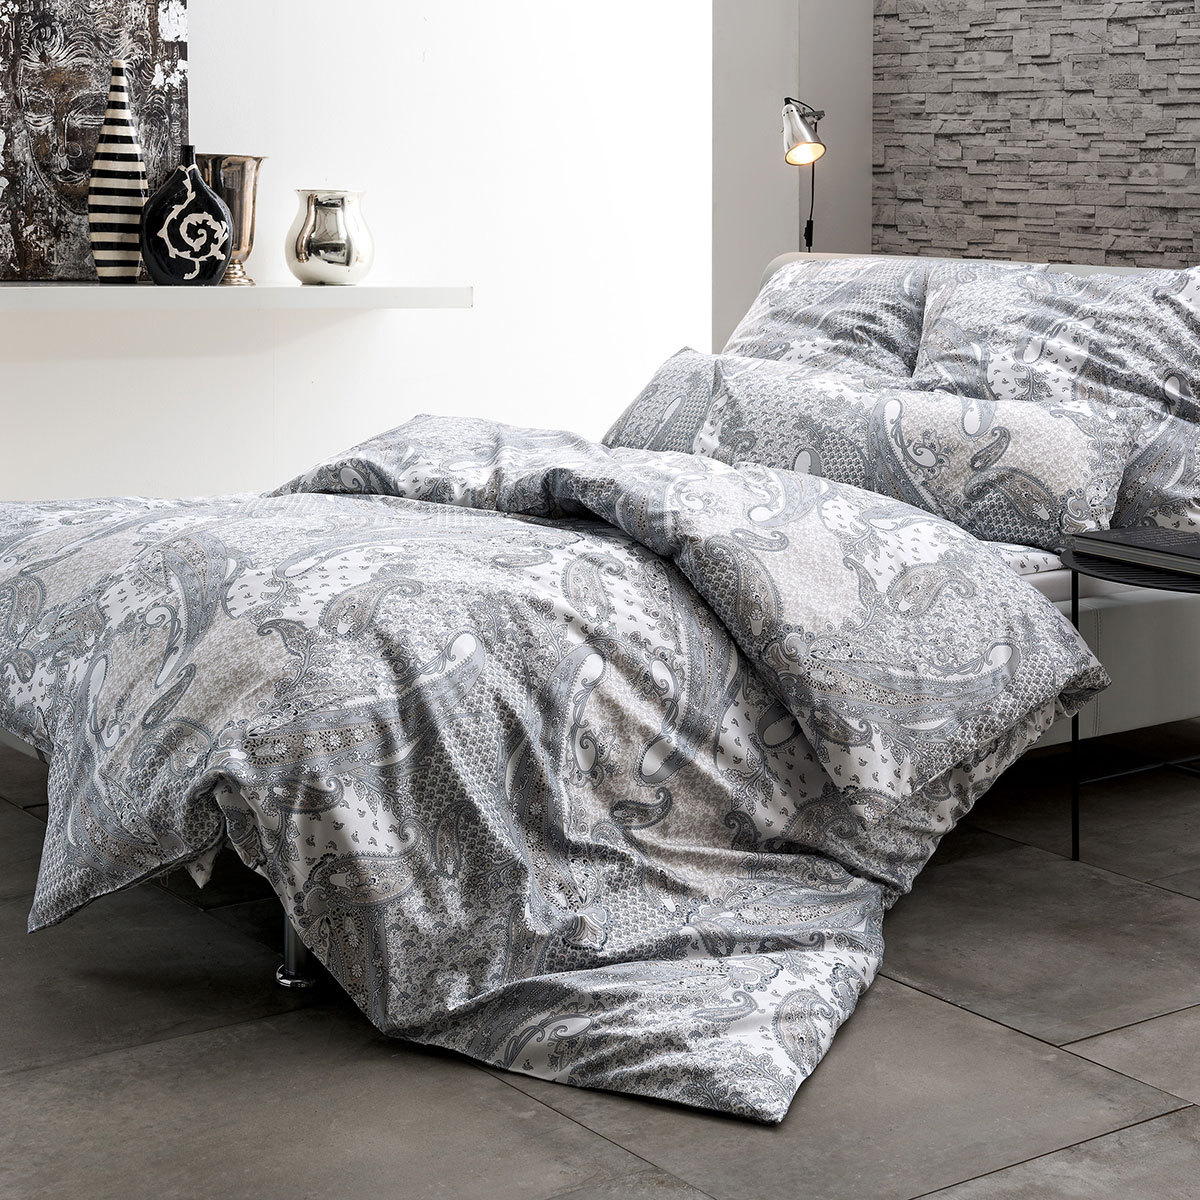 estella mako satin bettw sche simona silber g nstig online kaufen bei bettwaren shop. Black Bedroom Furniture Sets. Home Design Ideas